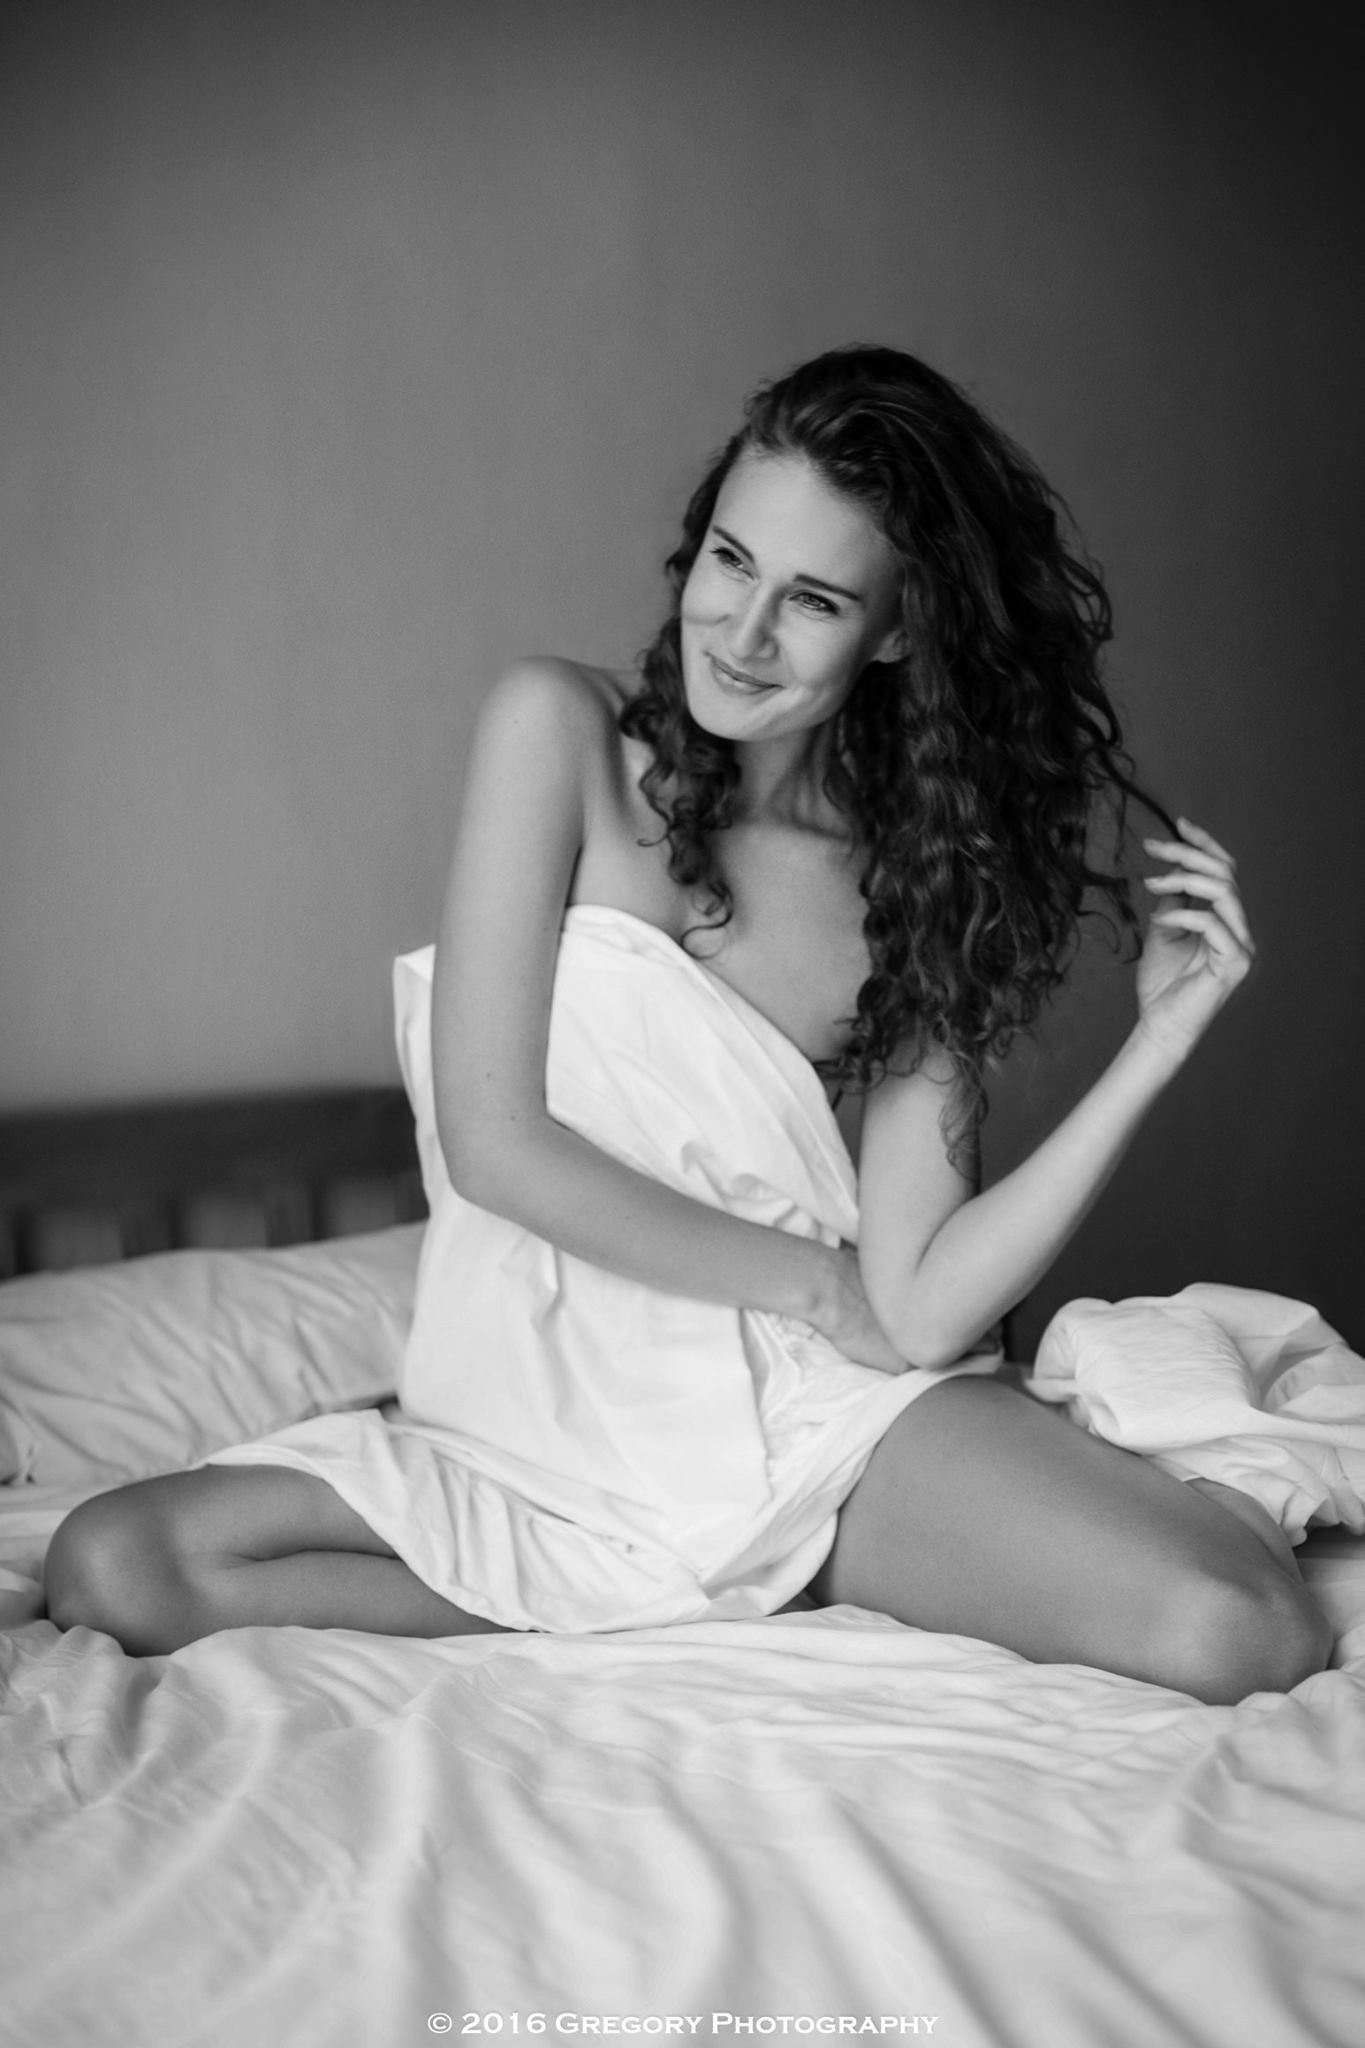 Bedsheets Bedroom Photoshoot Black And White Photography